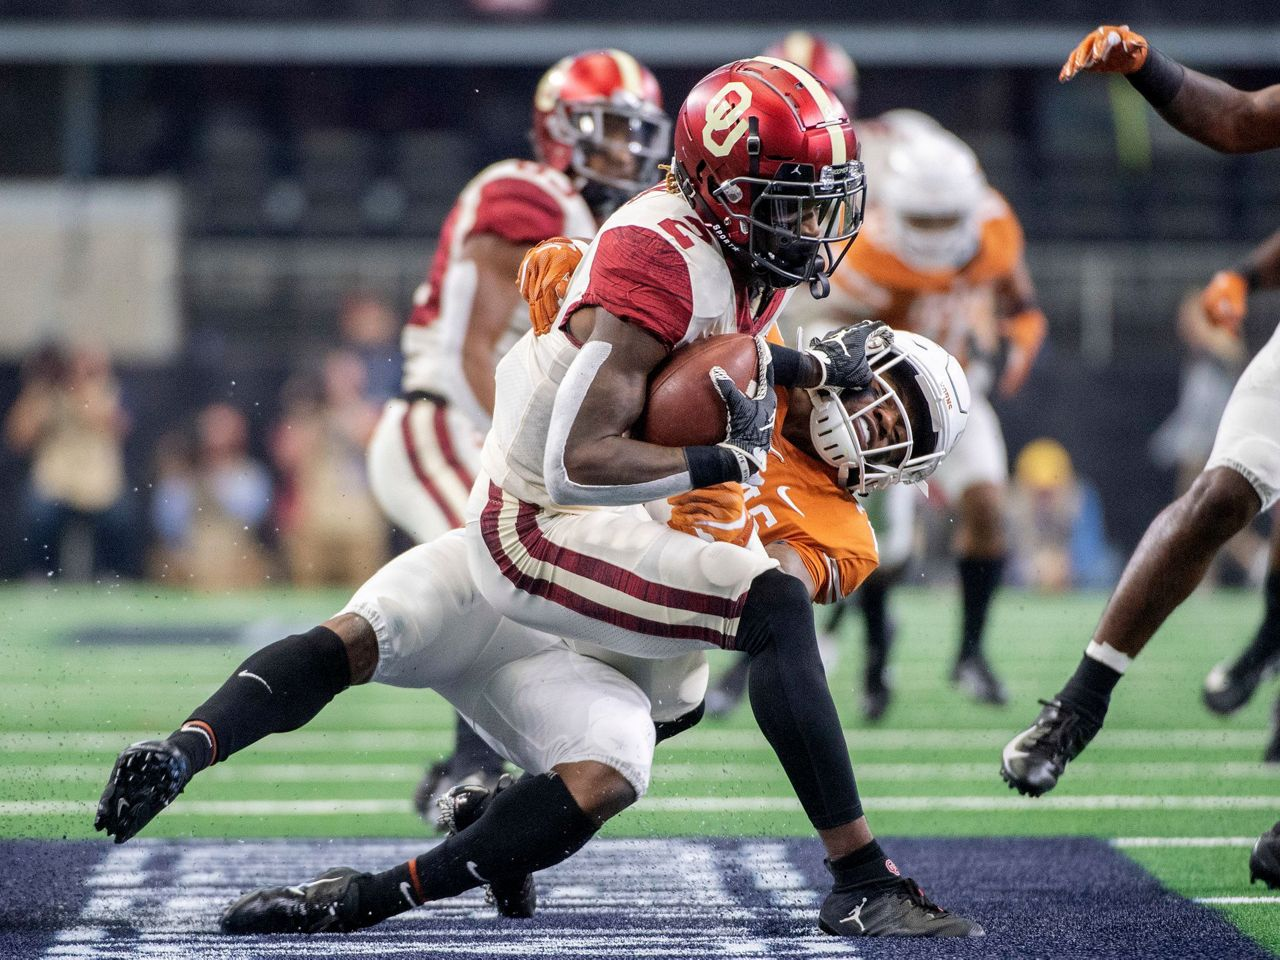 The Latest: Championship Saturday starts with Texas TD